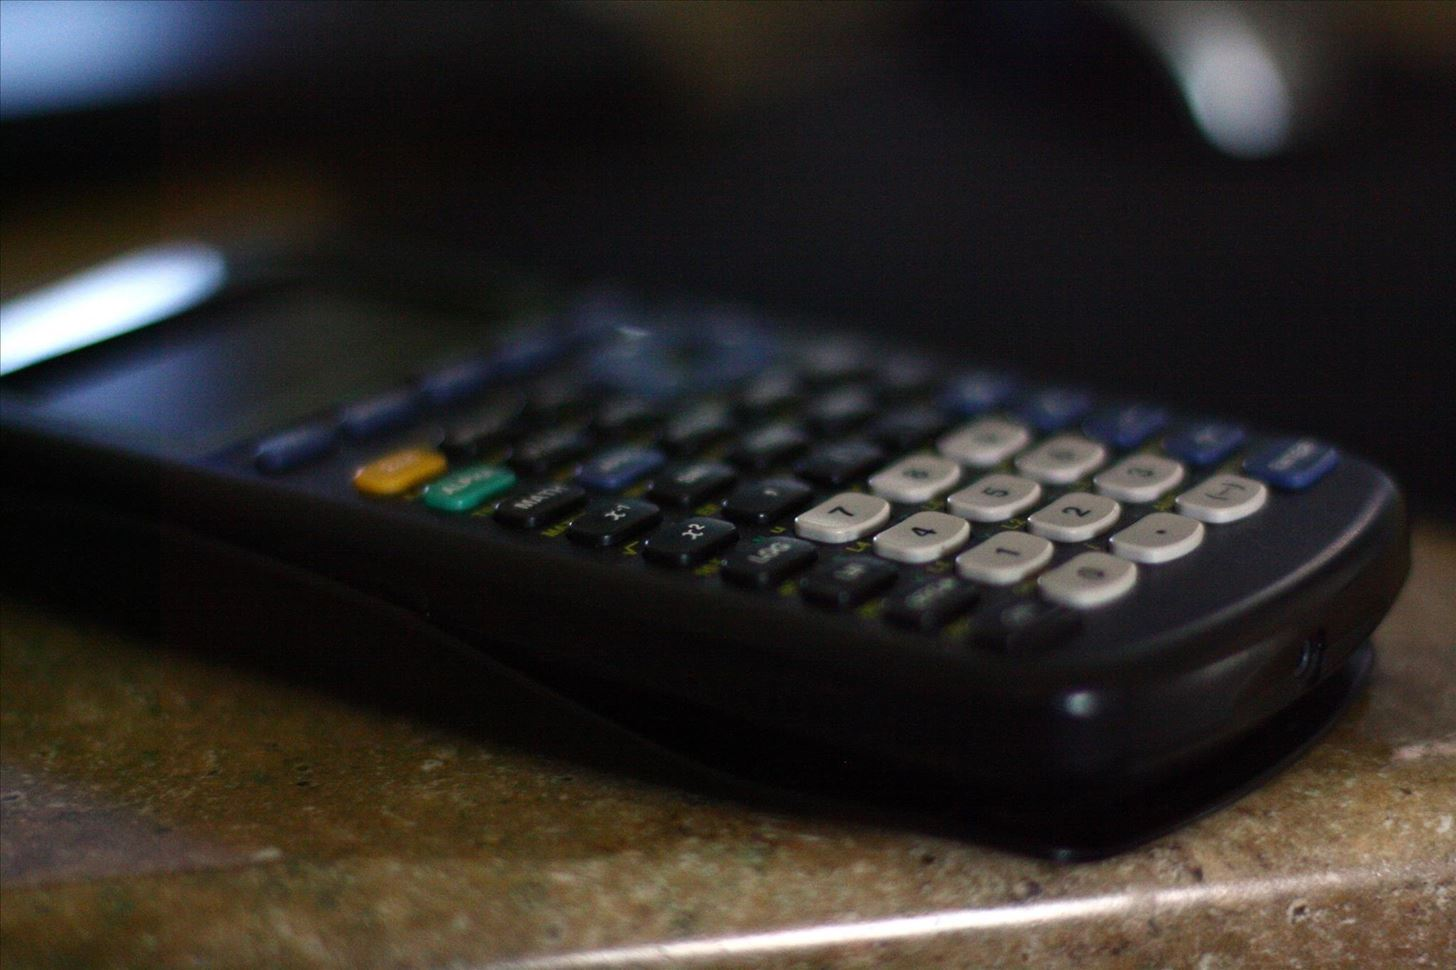 How to Turn Your Samsung Galaxy S3 into a Powerful TI-89 Titanium Graphing Calculator